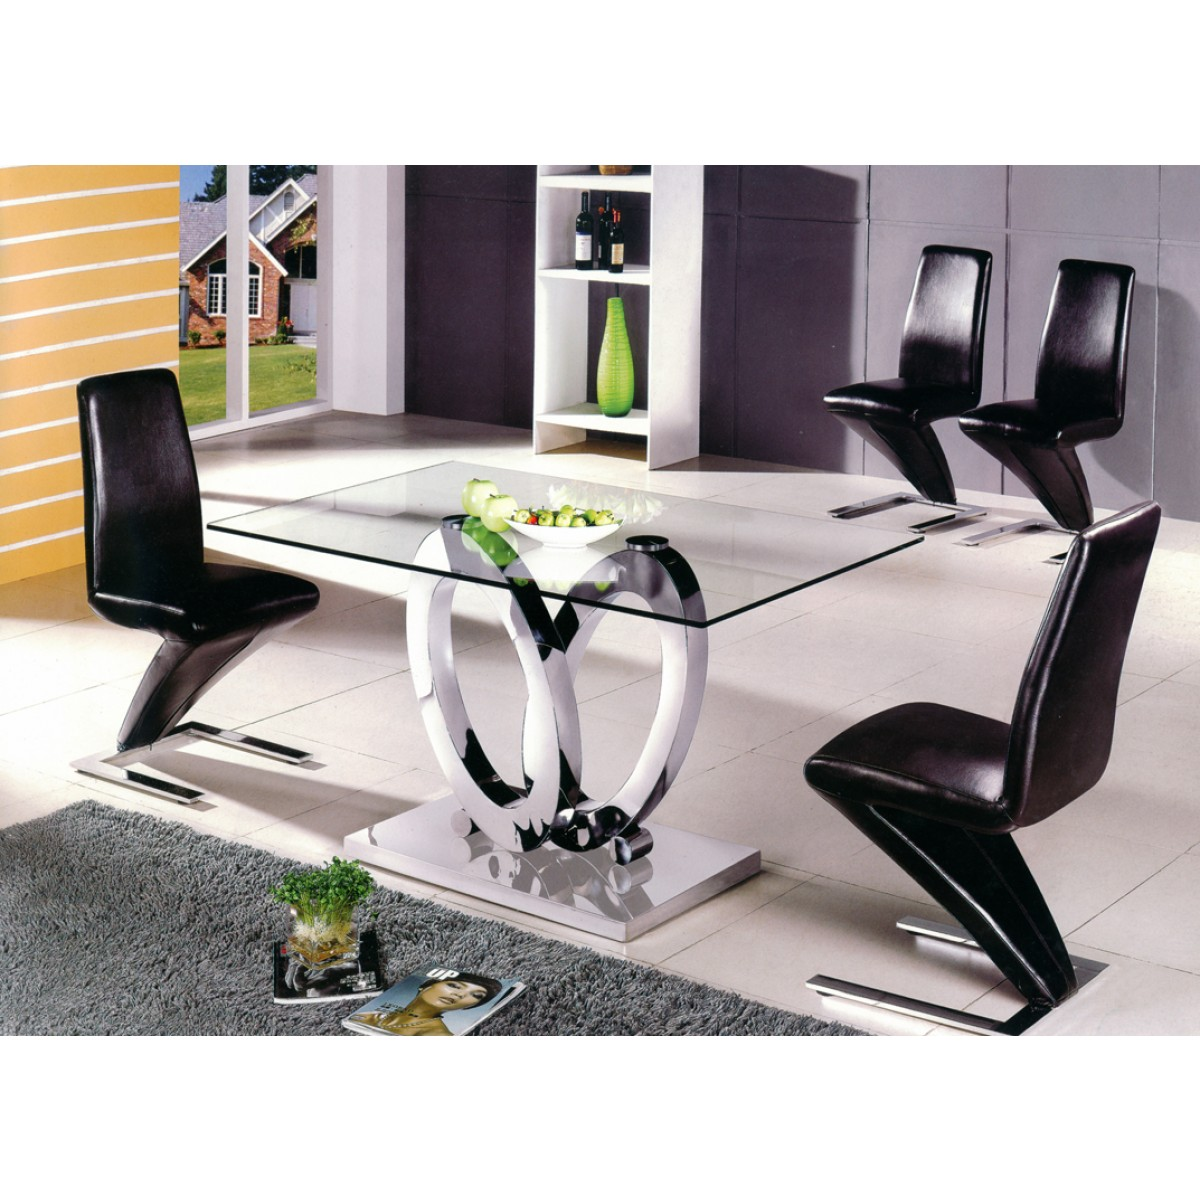 Table manger design ellipse taille au choix tables for Table de salle a manger noire